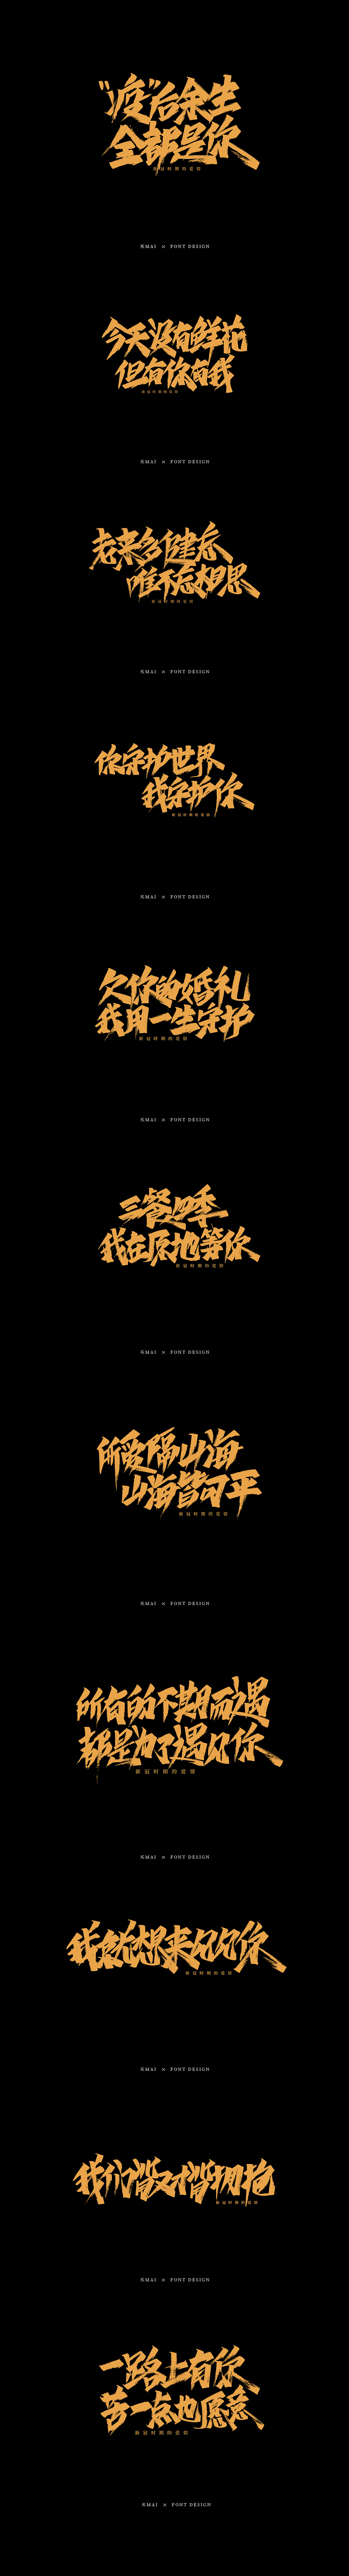 Chinese Creative Font Design-The love of the new crown period, with you along the way, is willing to suffer a little.